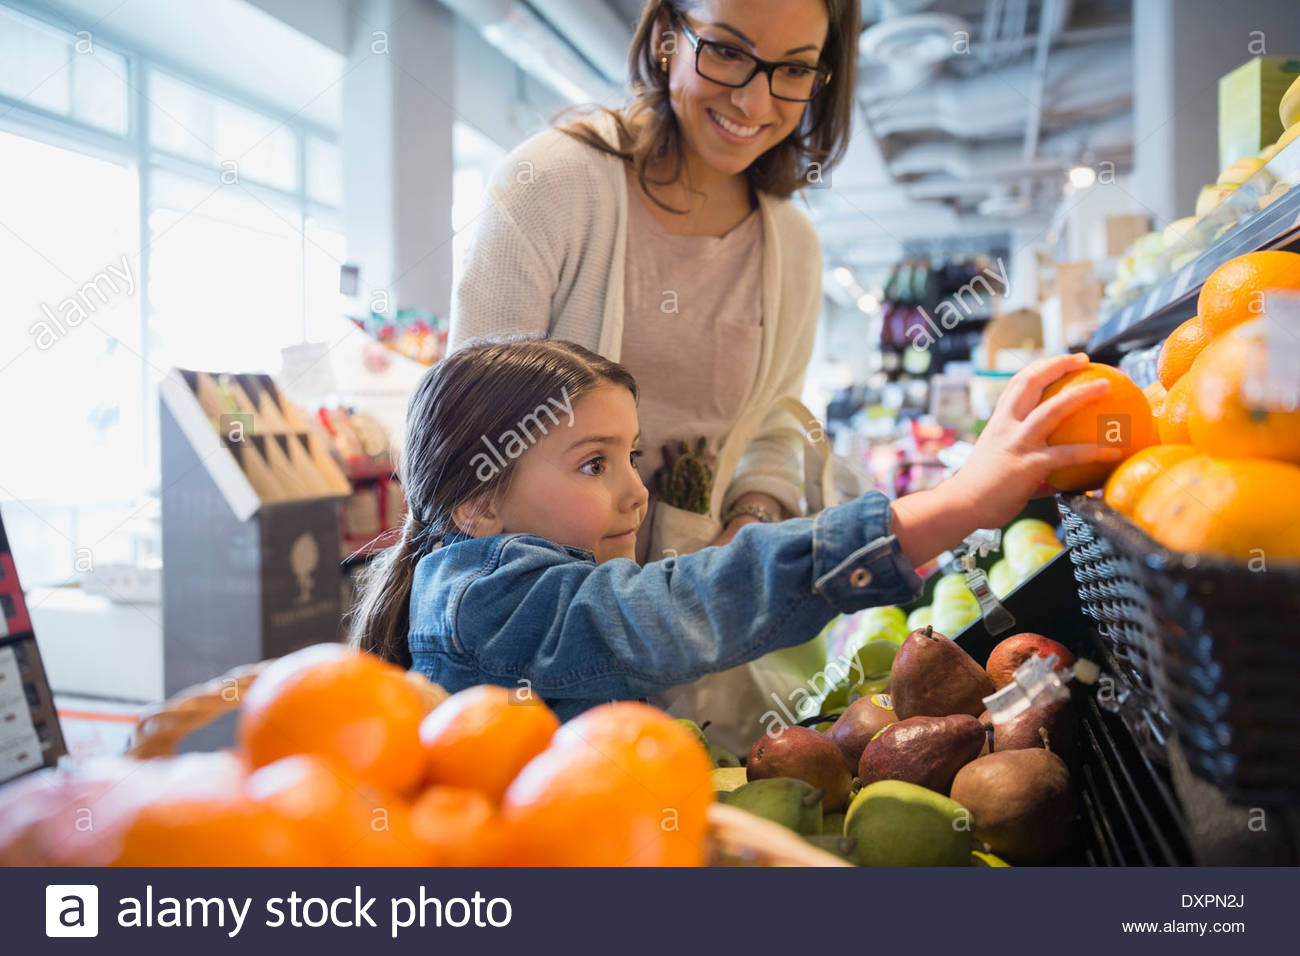 Mother watching daughter reach for orange in market - Stock Image